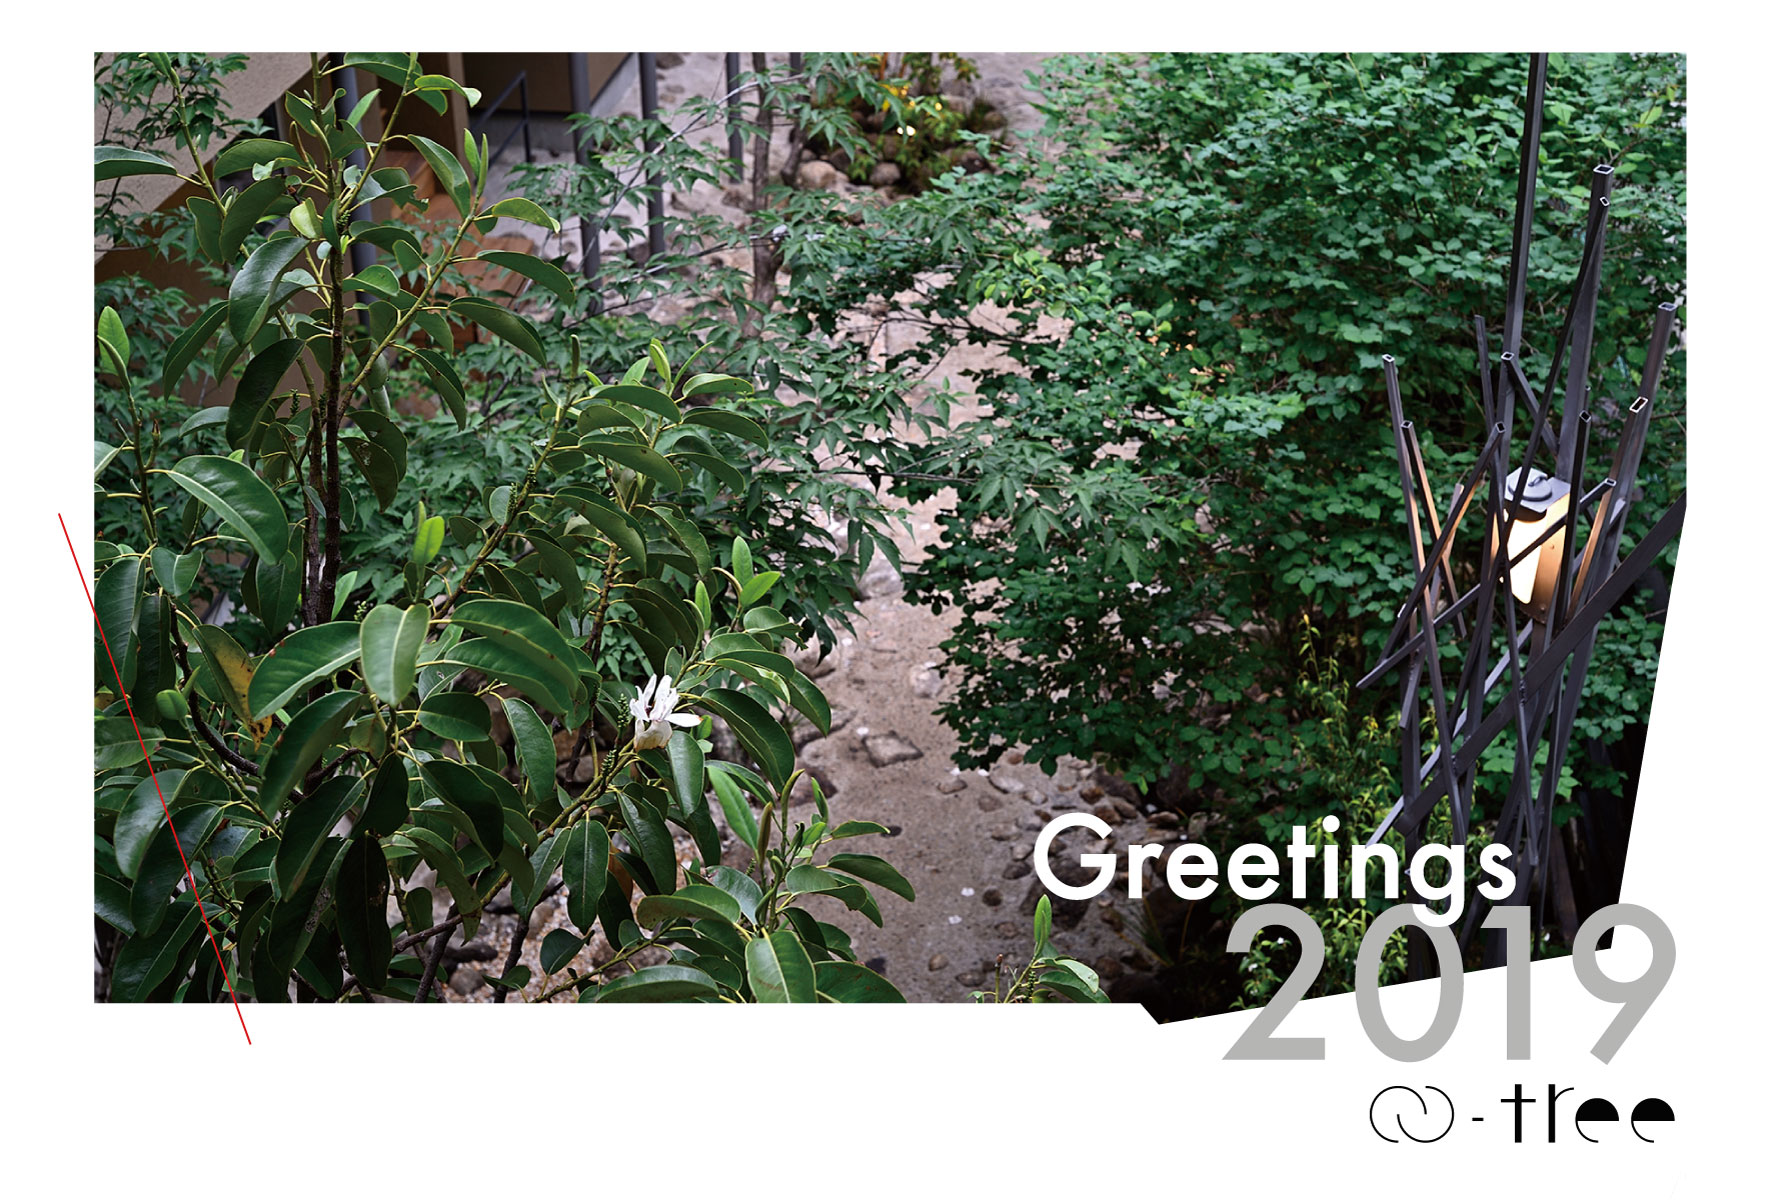 Greetings_2019_N-tree_web